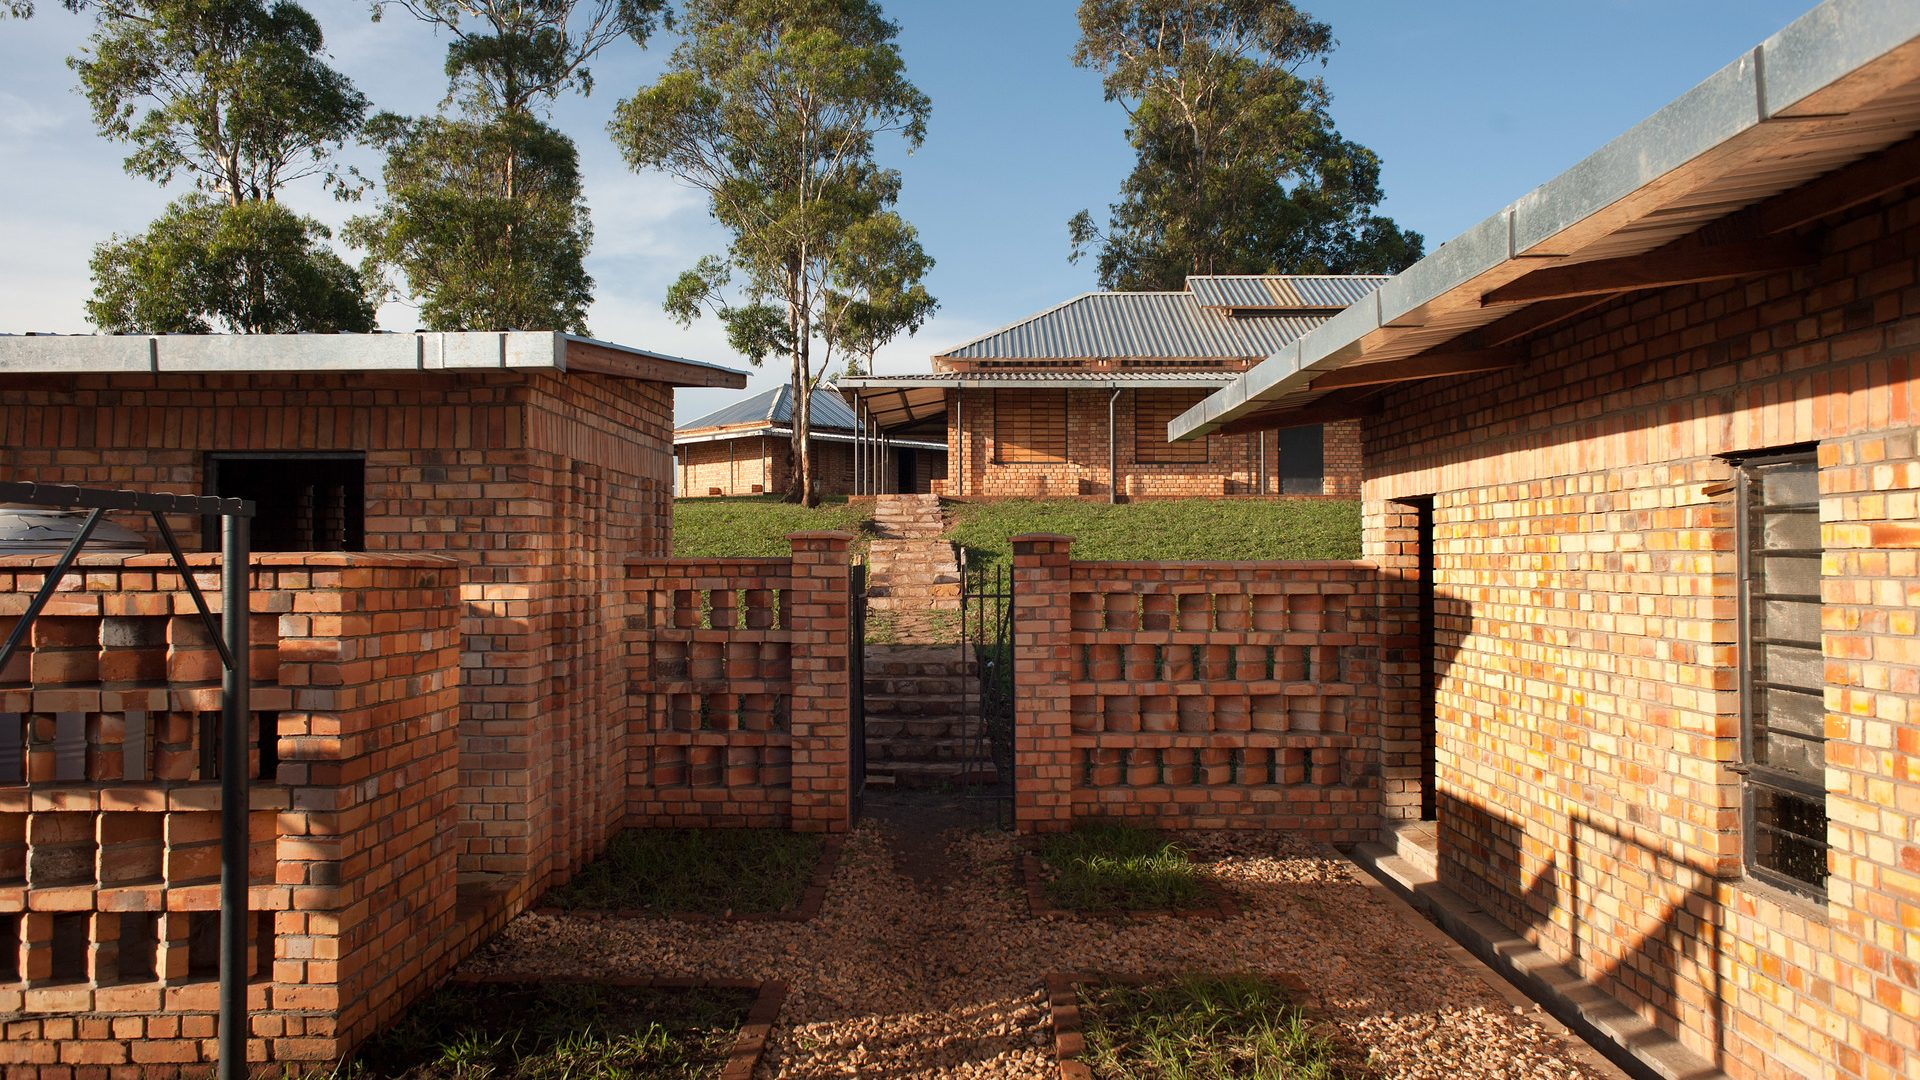 Teachers accommodation buildings